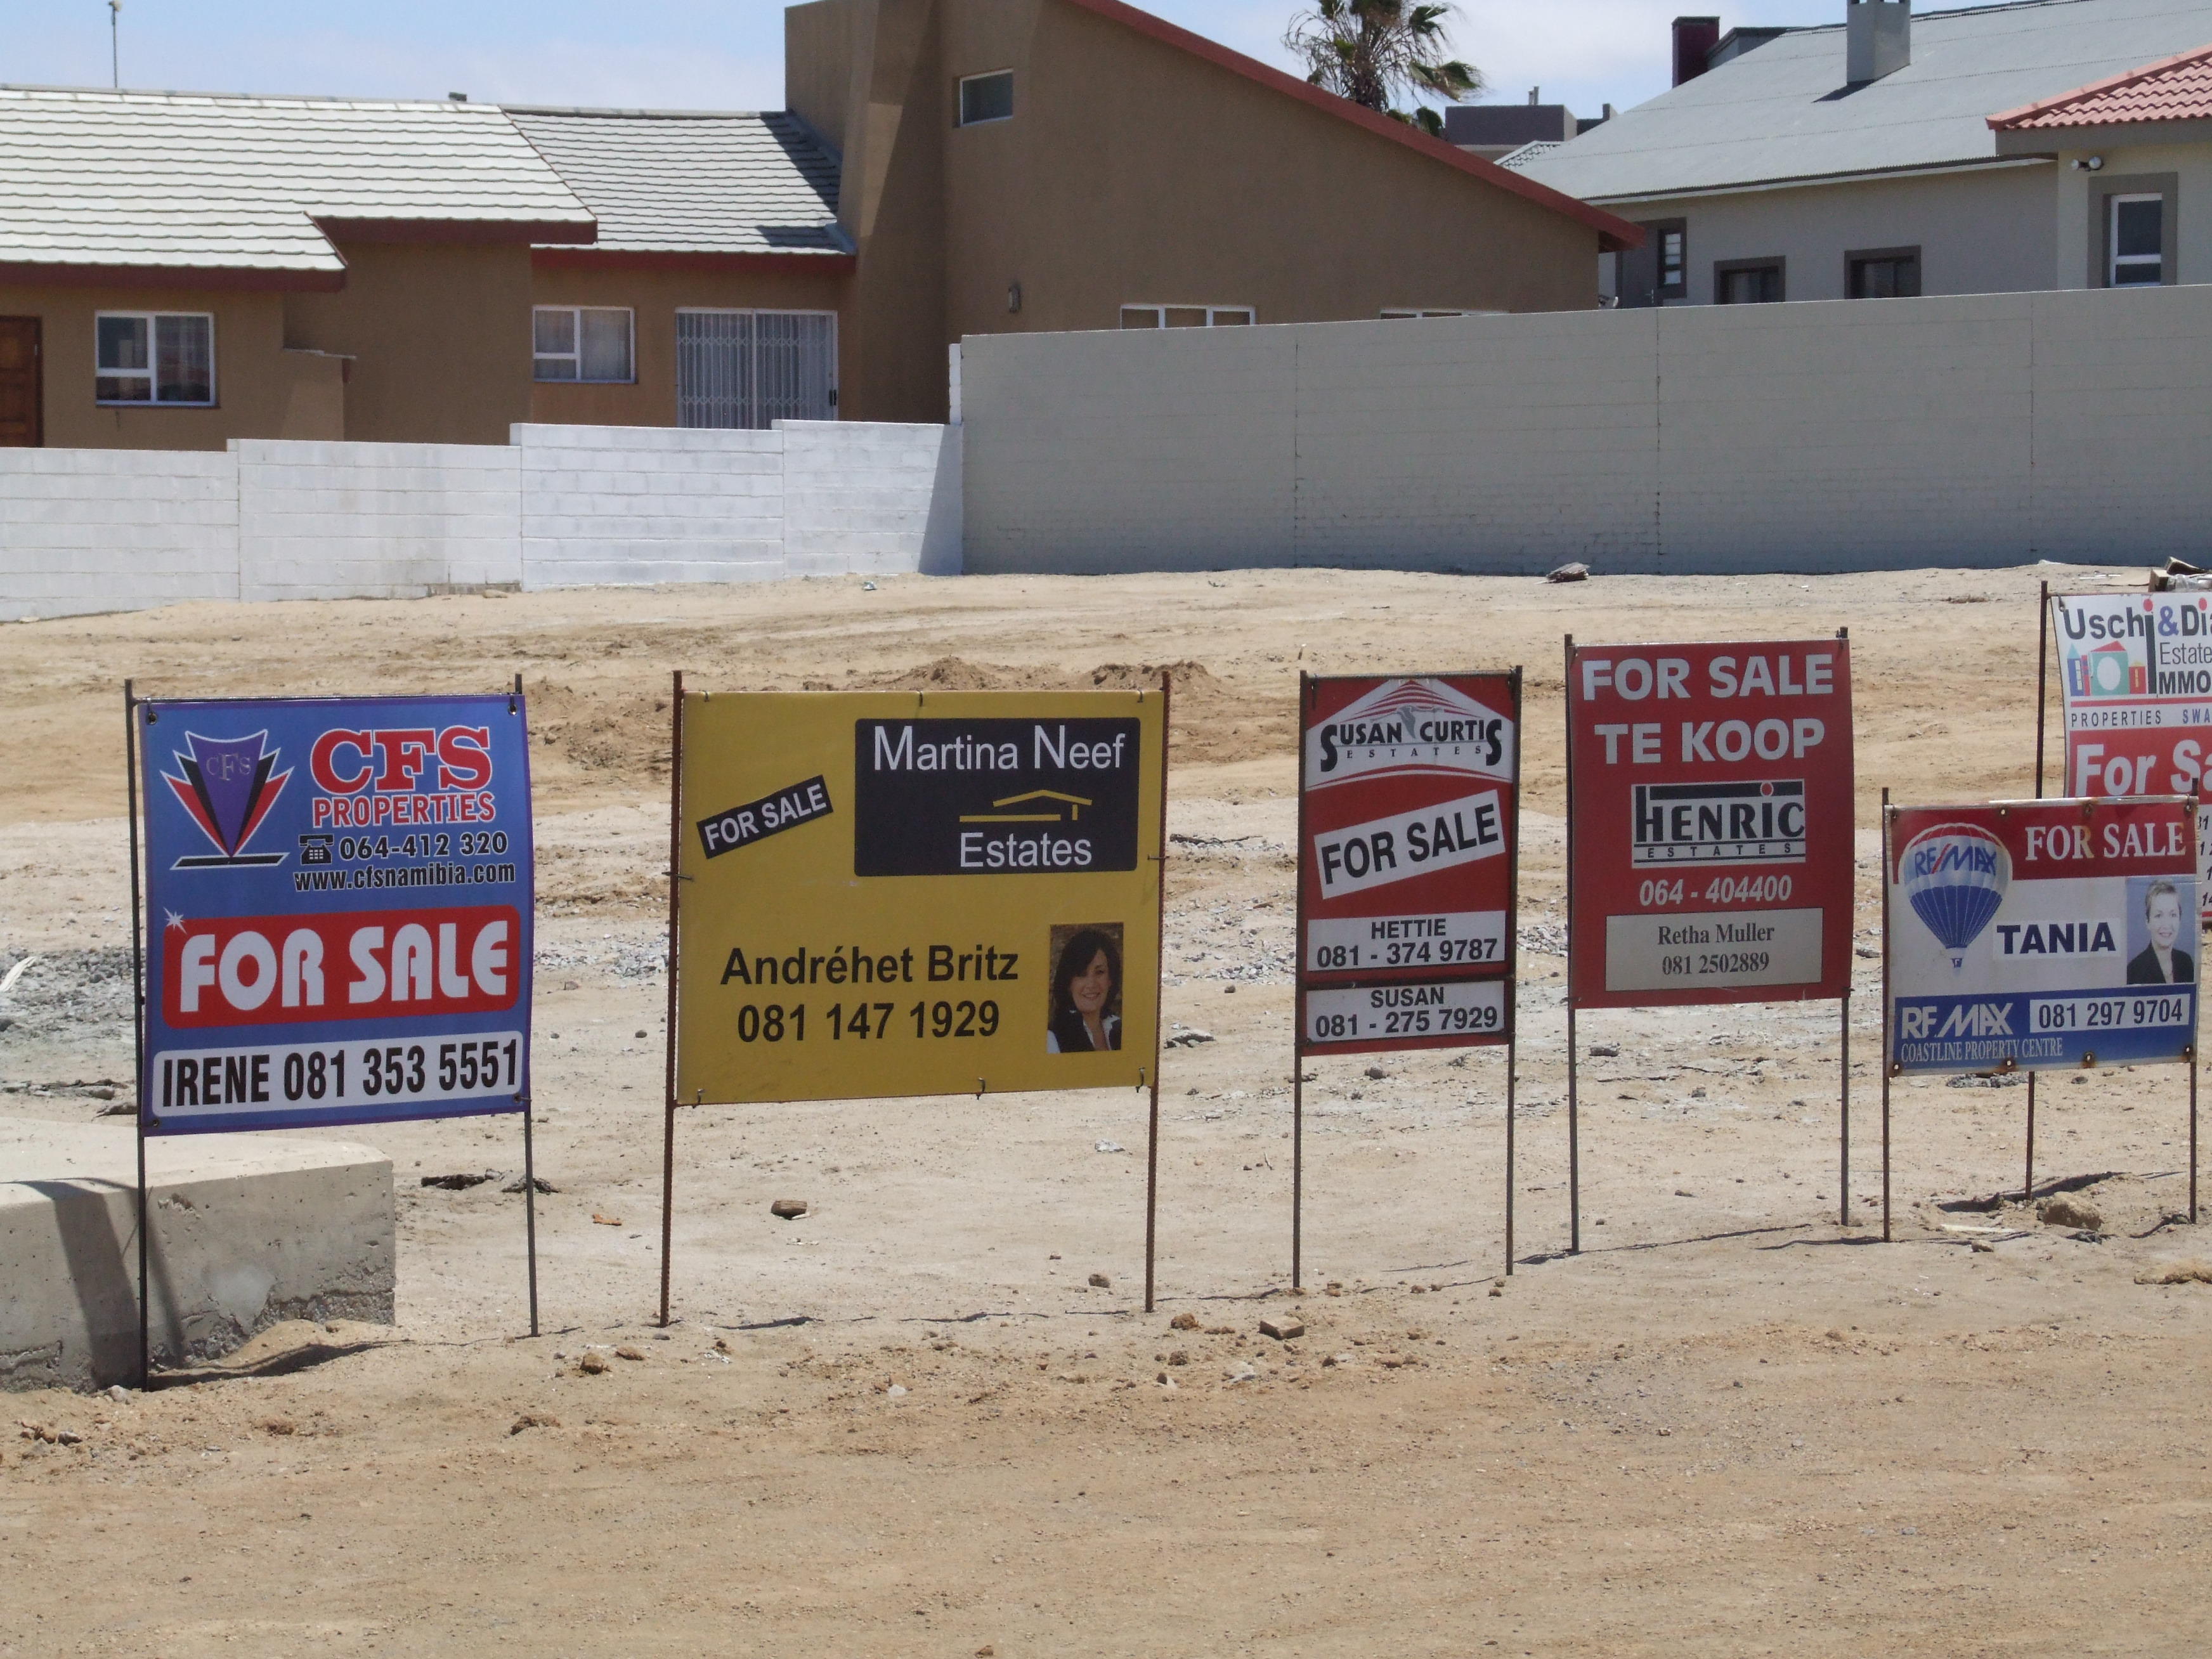 Rogue estate agents' days numbered - Business - Namibian Sun